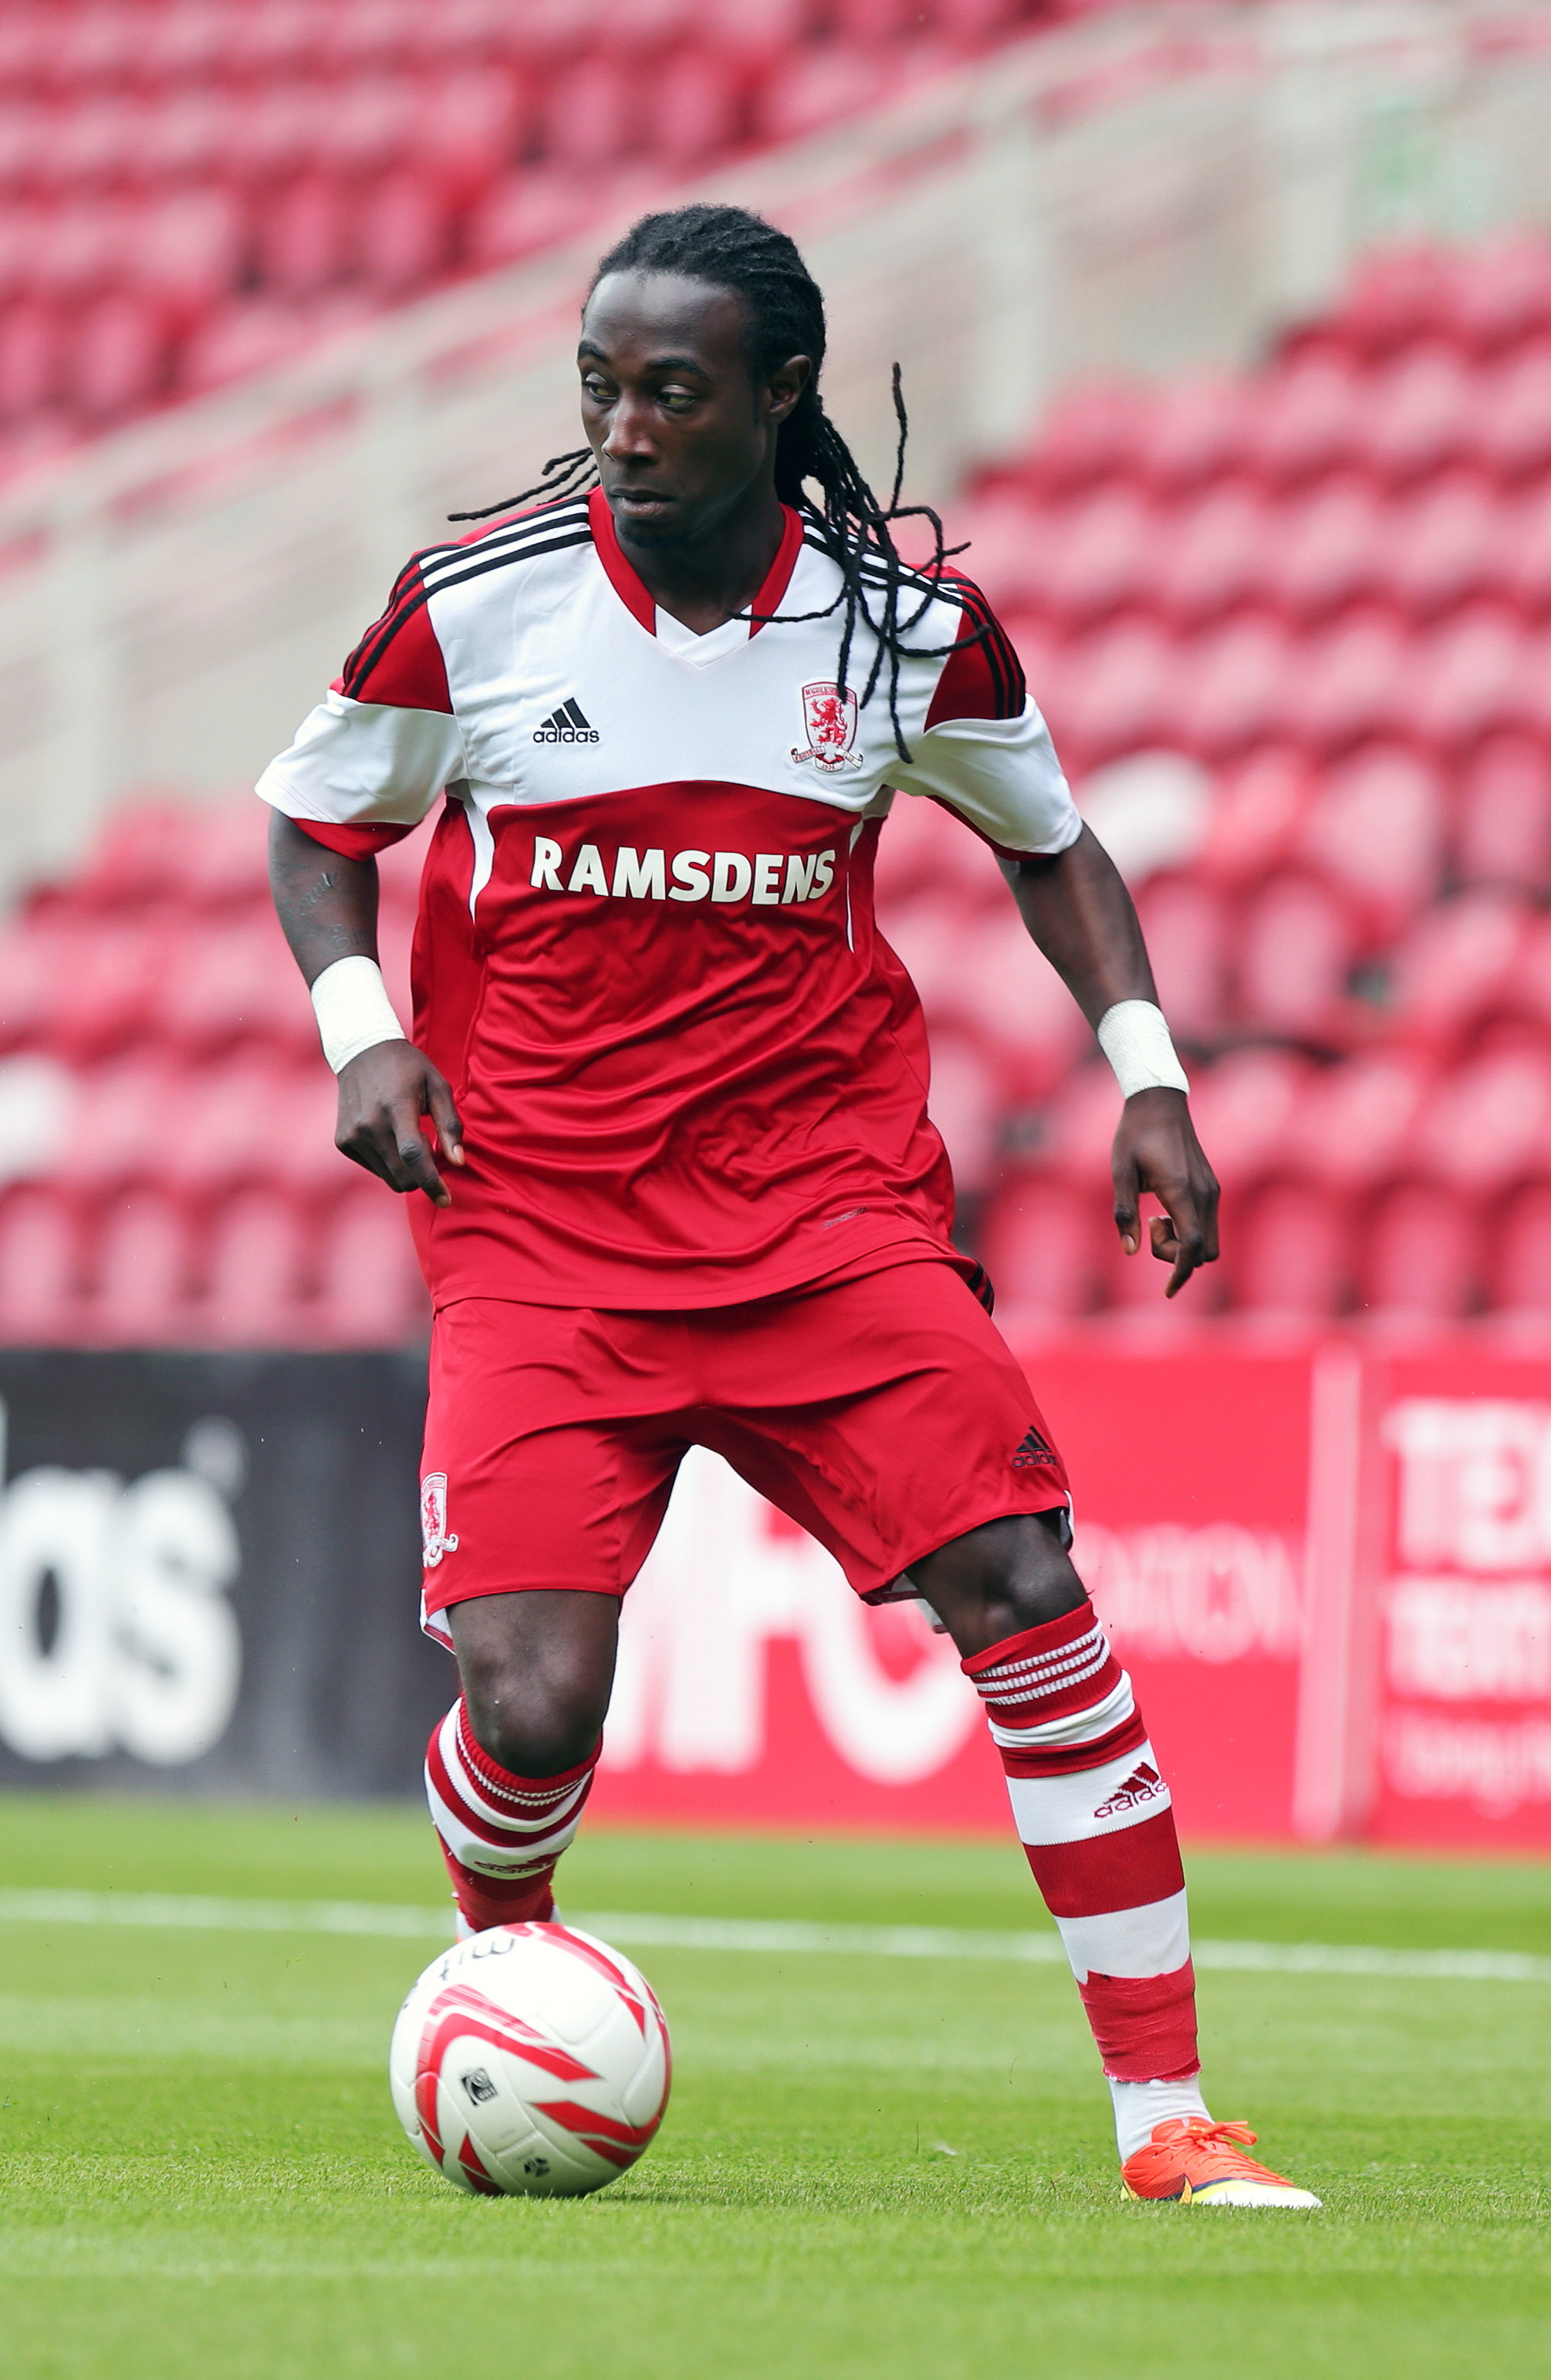 MOVE: Marvin Emnes is close to signing a permanent deal with Swansea City